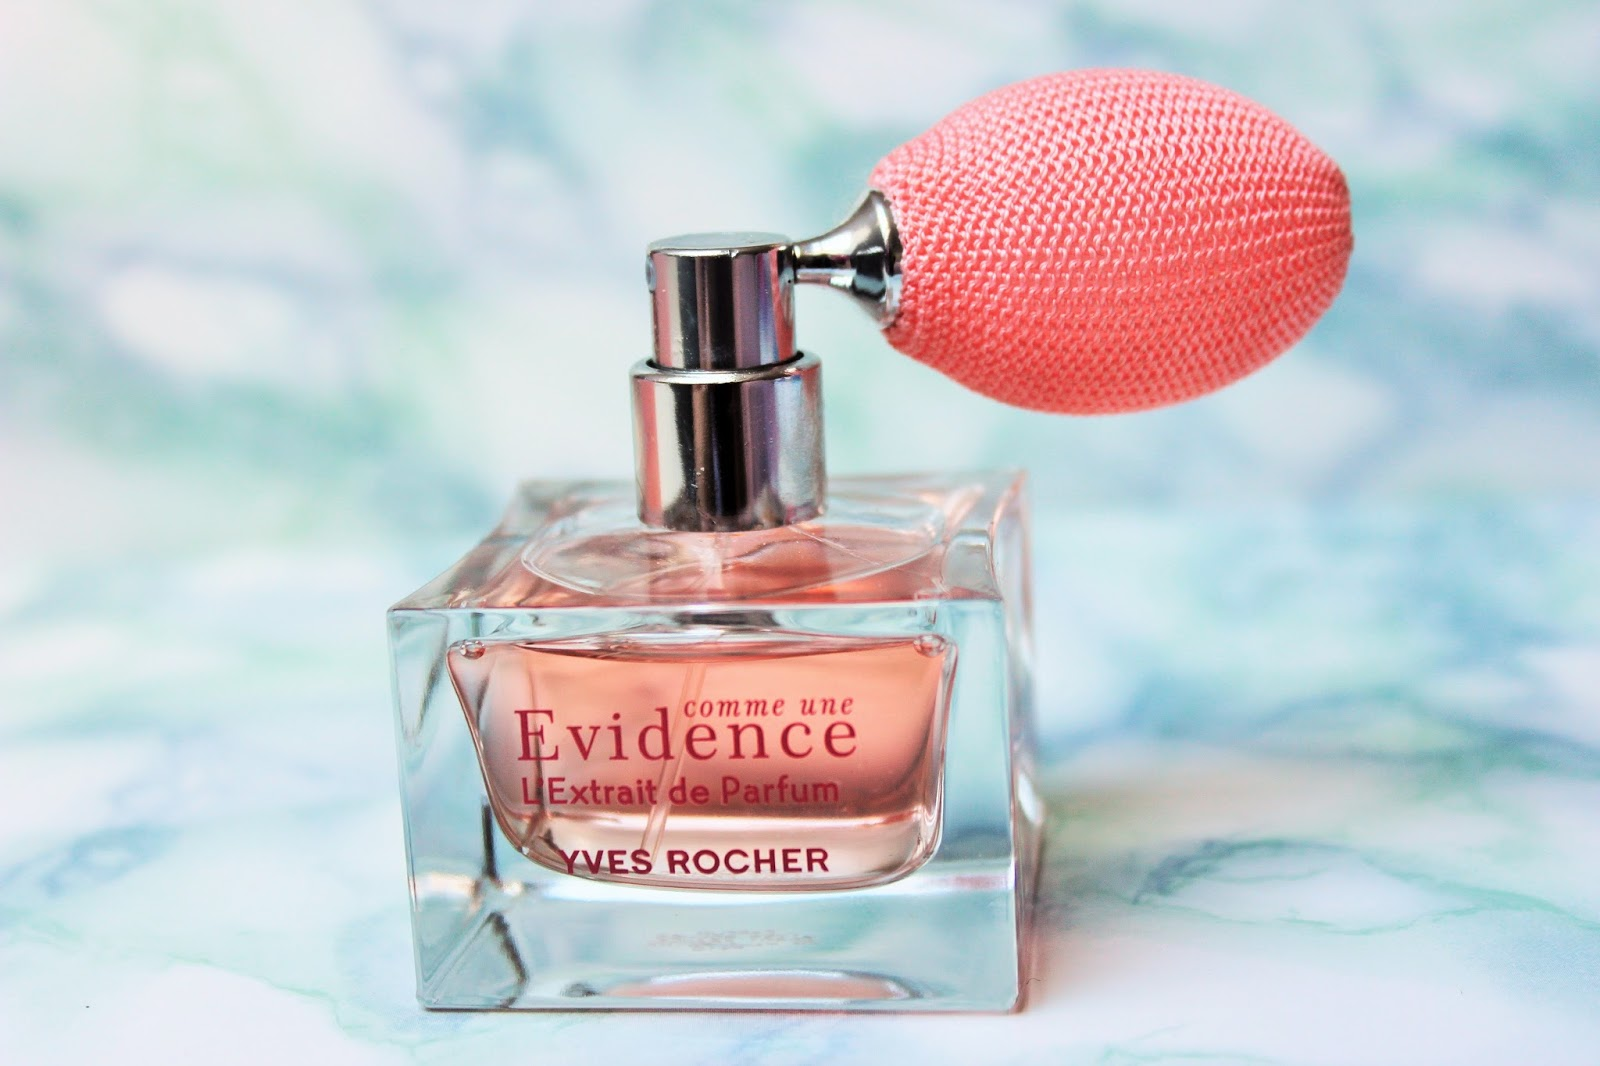 Yves Rocher Le Parfum Comme Une Evidence Thats What I Like